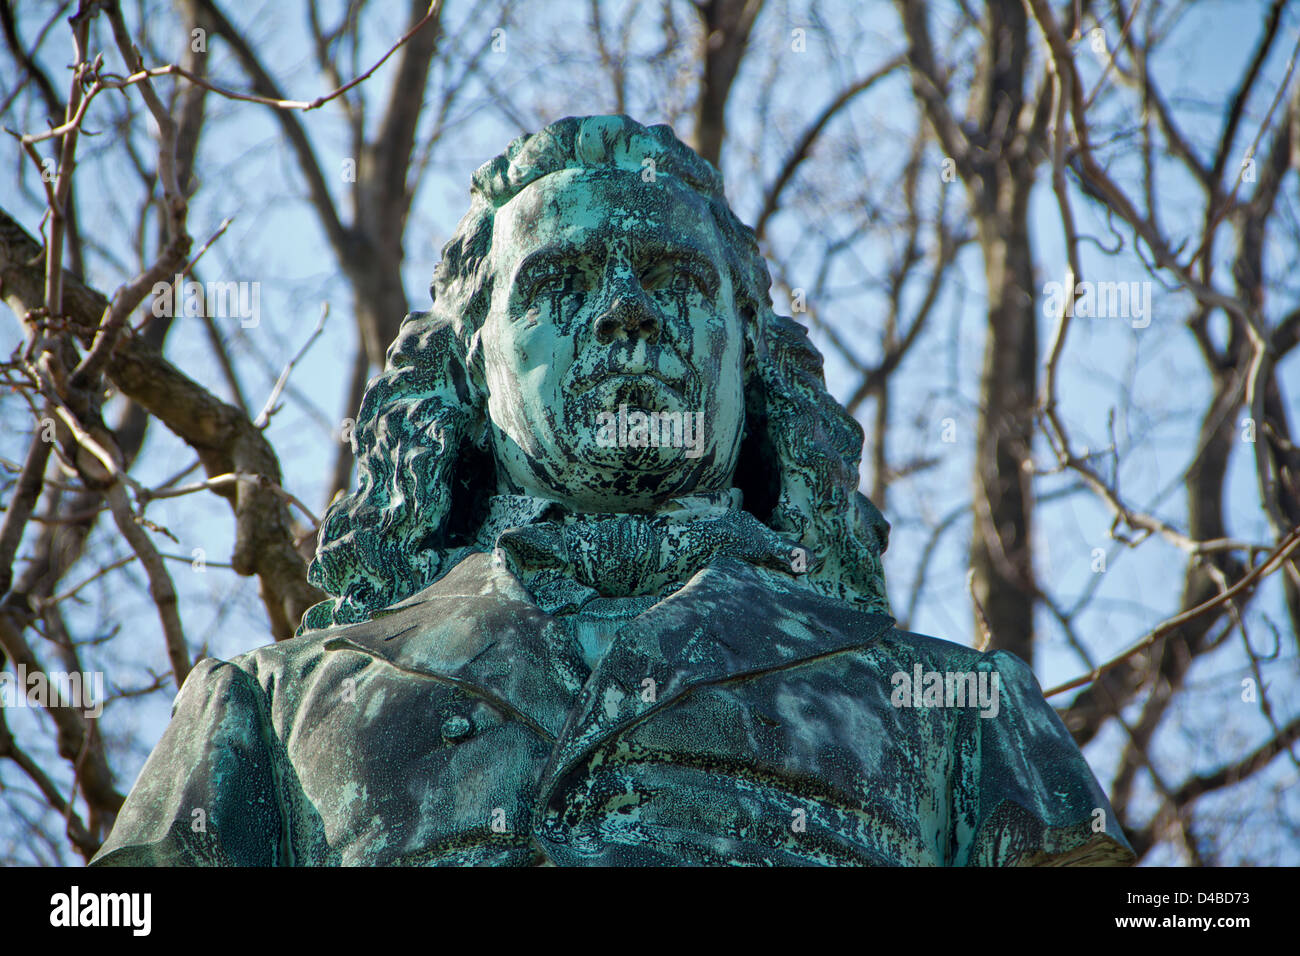 Male statue in Graveyard - Stock Image